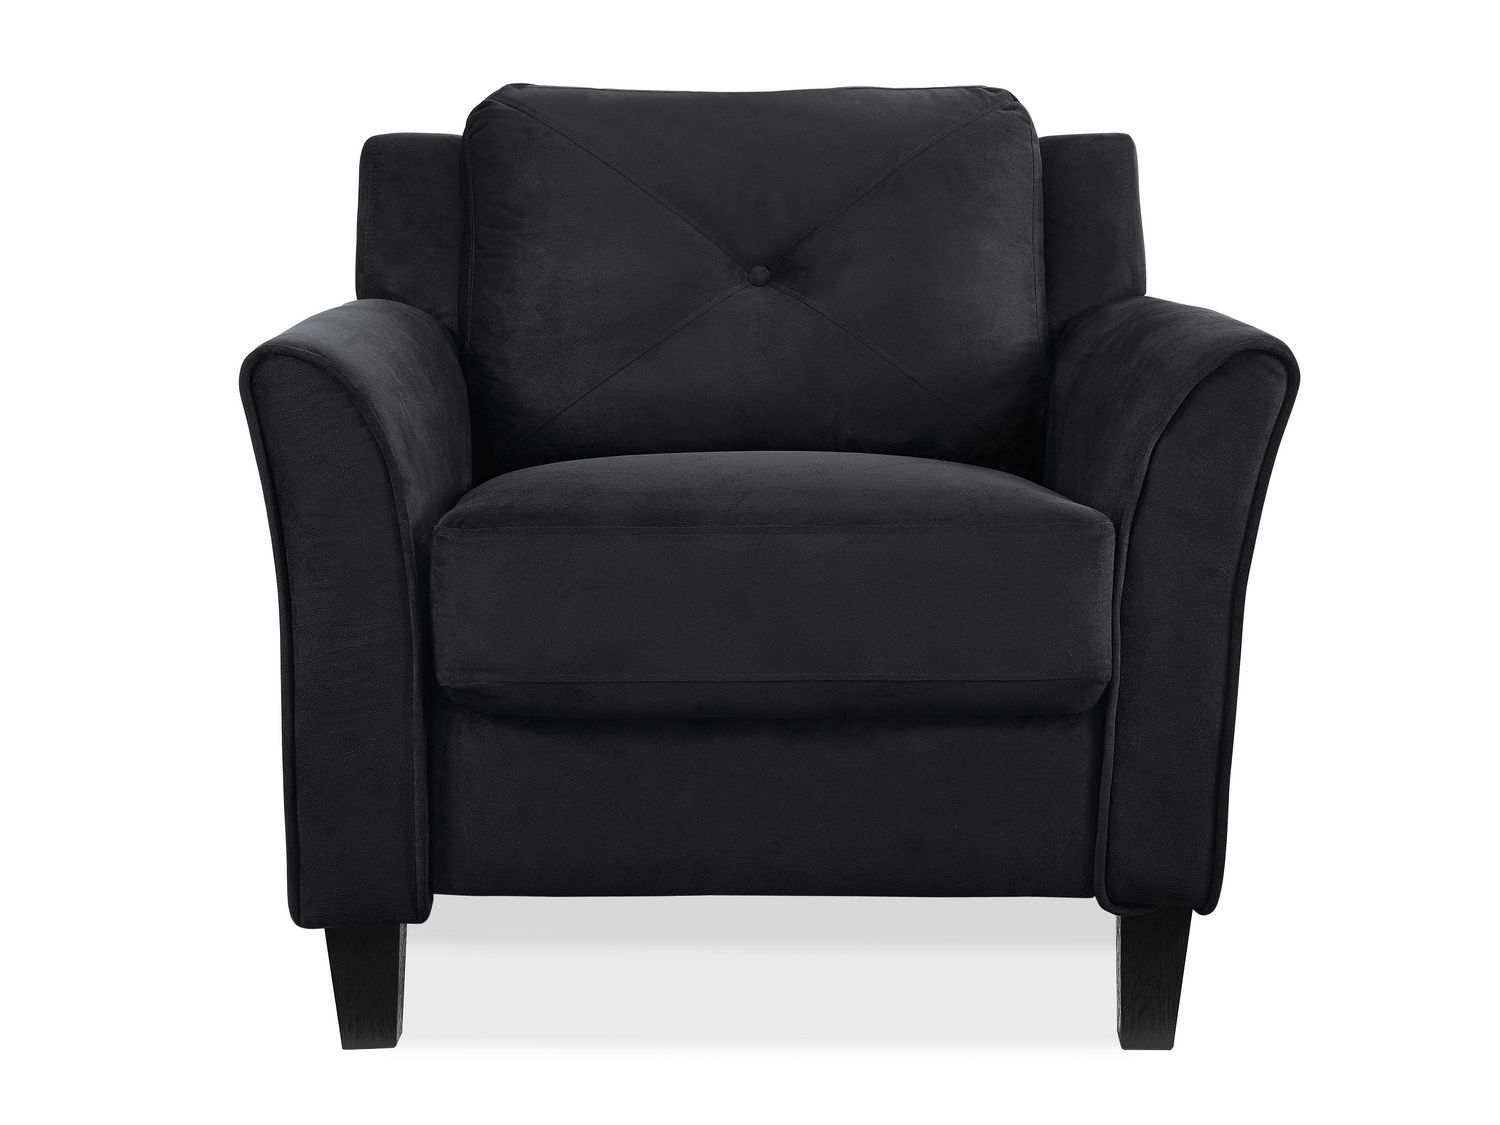 Living Room Chair Buy Living Room Chairs Online Walmart Canada